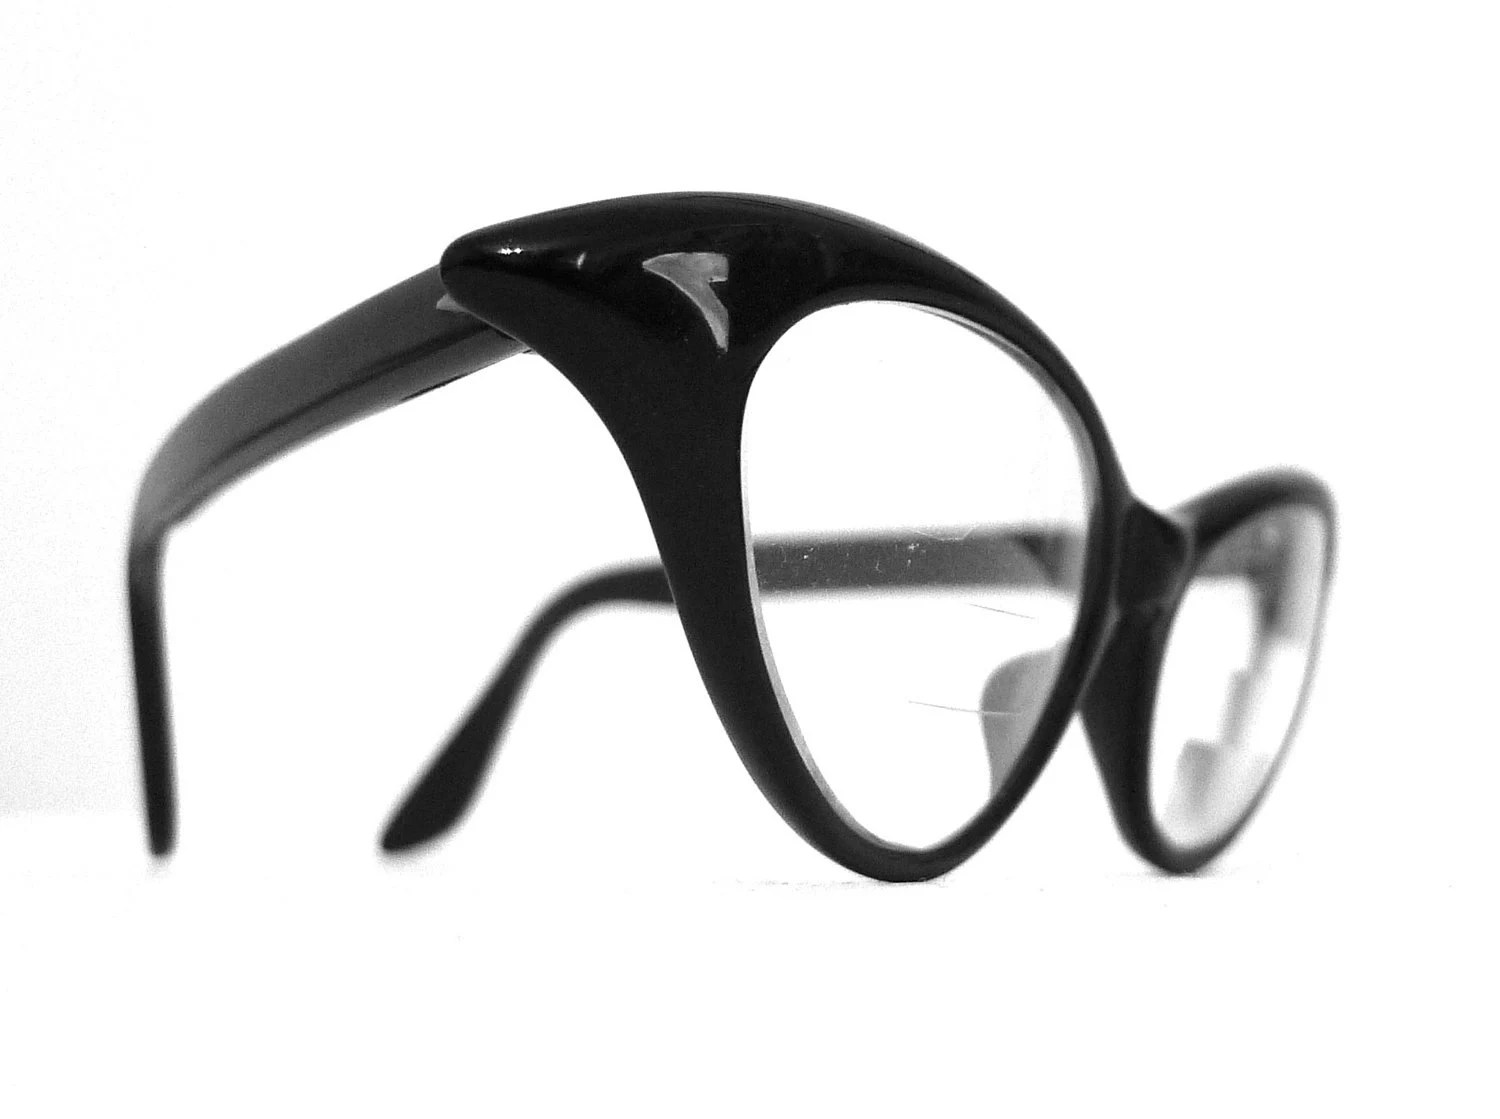 Superb Black Horn Rimmed Cat Eye Extremely Winged Eyeglasses or Sunglasses, Frame France